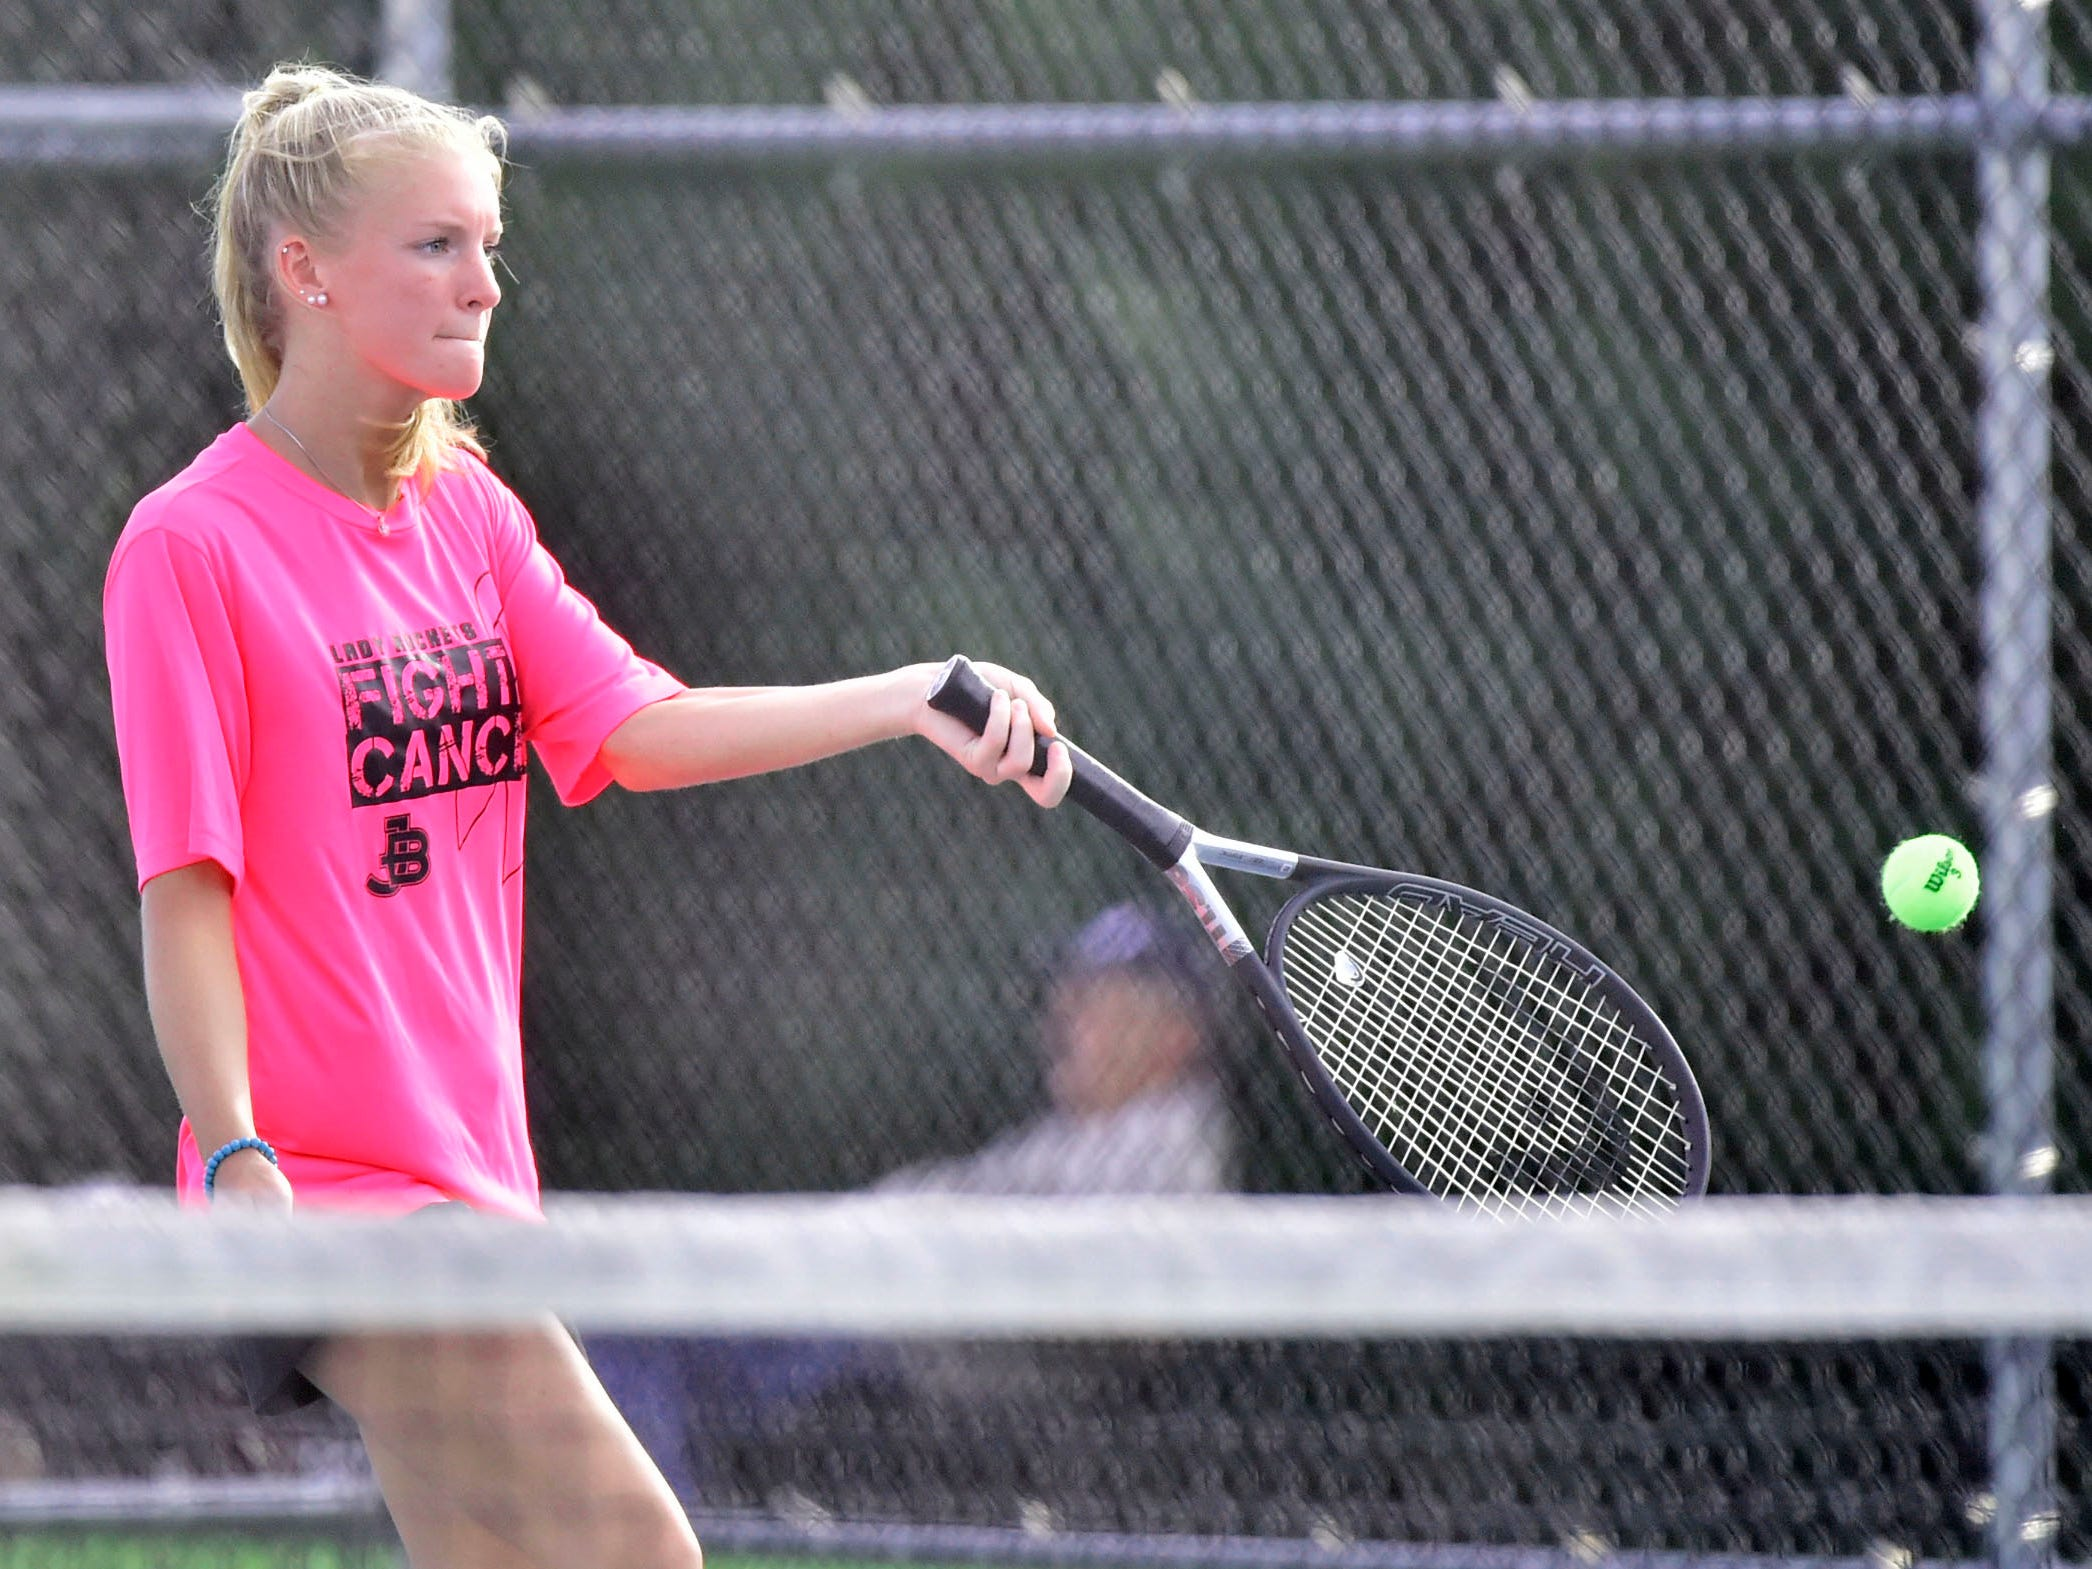 Ella Jones of James Buchanan plays a match against Middletown's Angie Torres during tennis action Thursday, September 20, 2018.